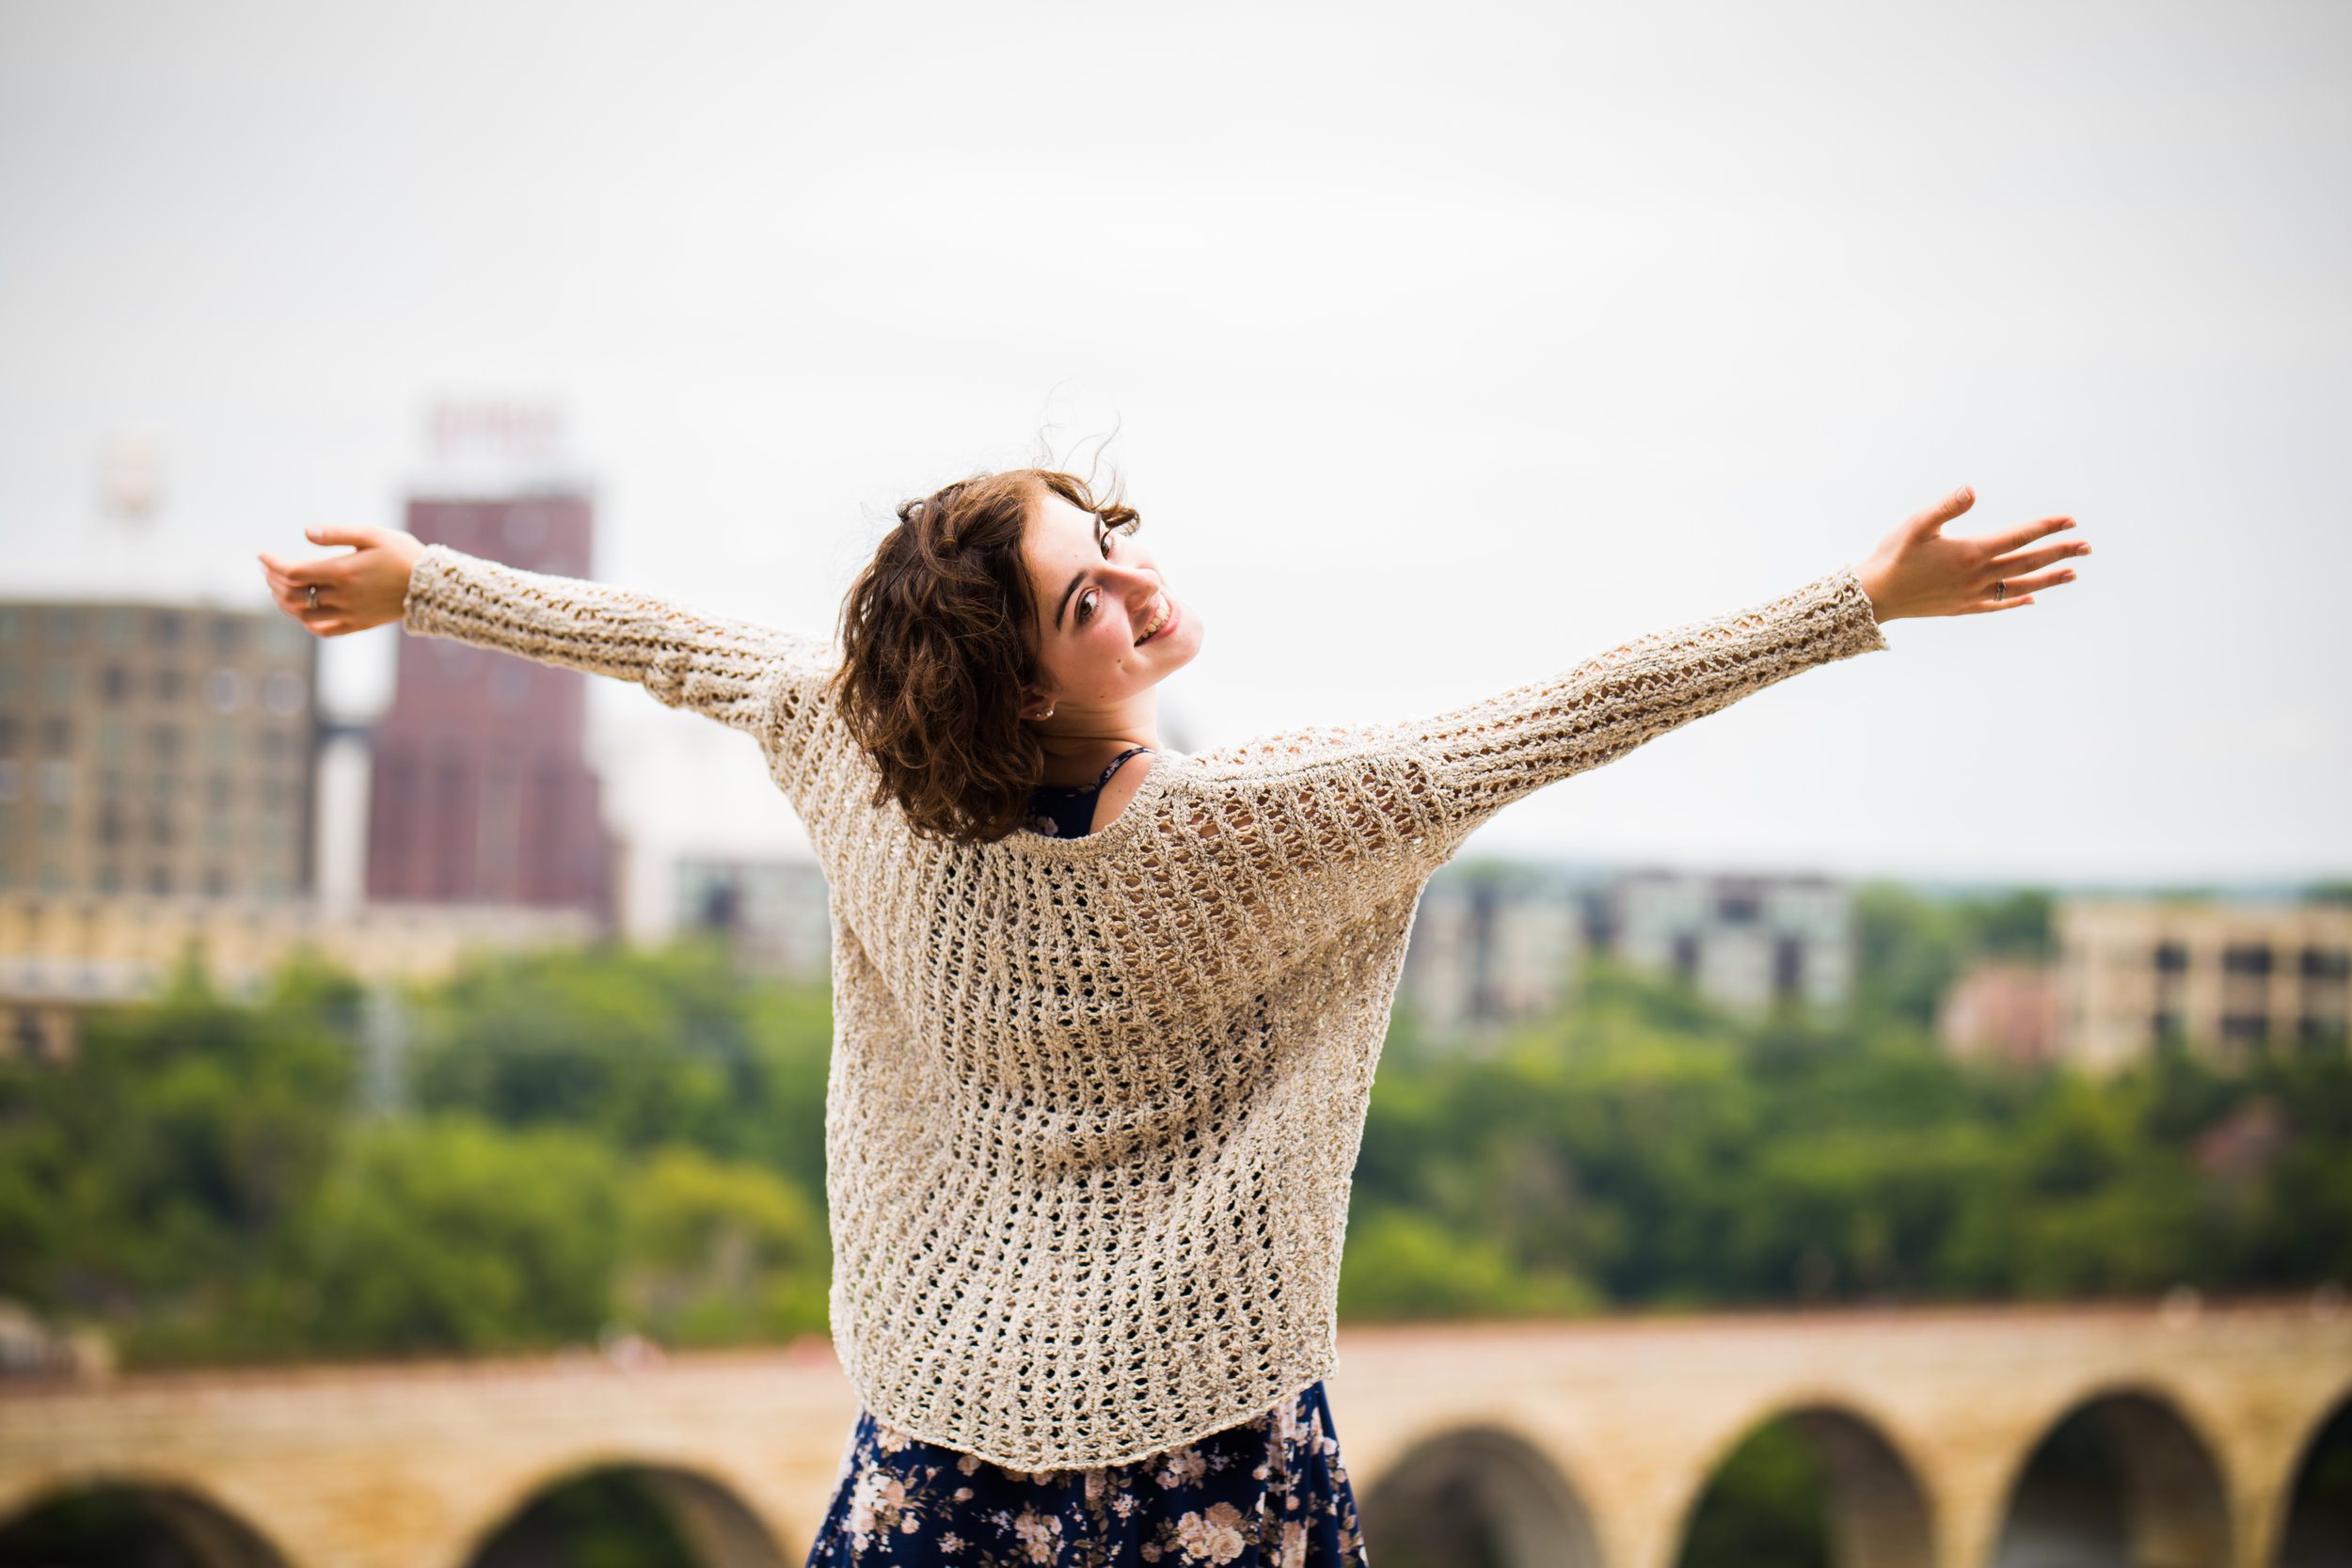 girl with outstretched arms in front of Stone Arch Bridge